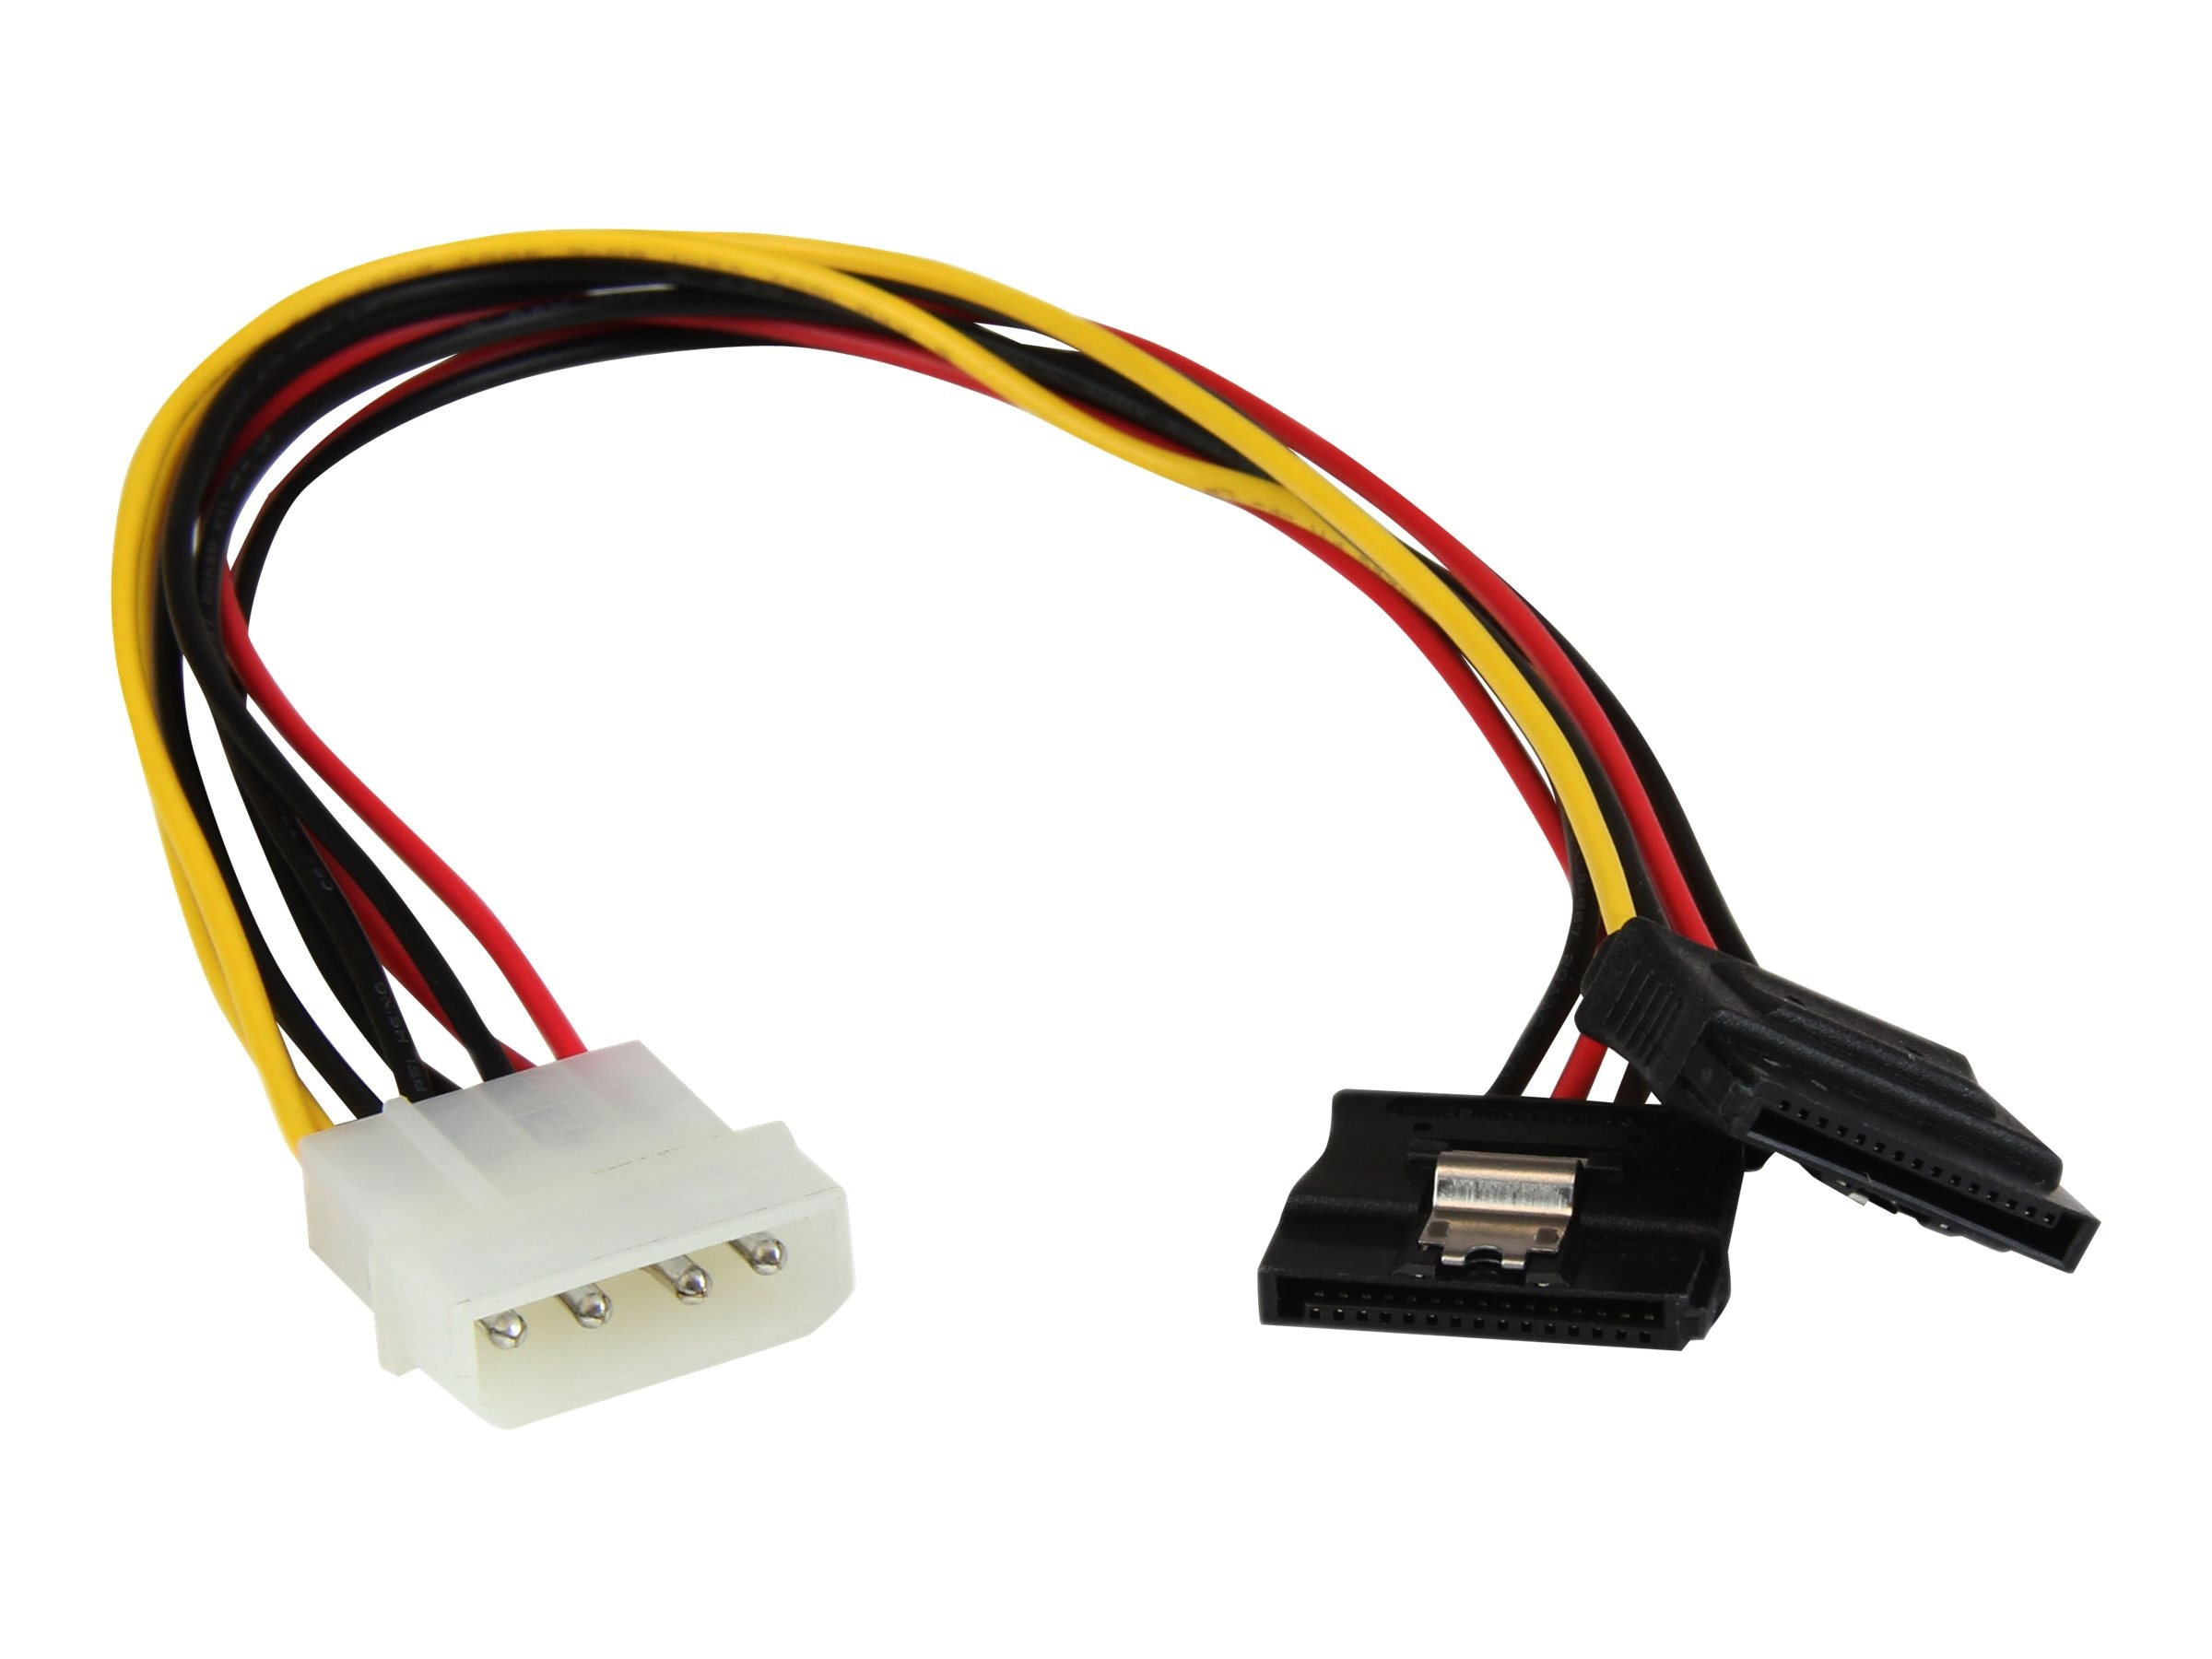 StarTech.com LP4 to 2x Latching SATA Power Y Cable Splitter Adapter, 4 Pin Molex to Dual SATA, 12in